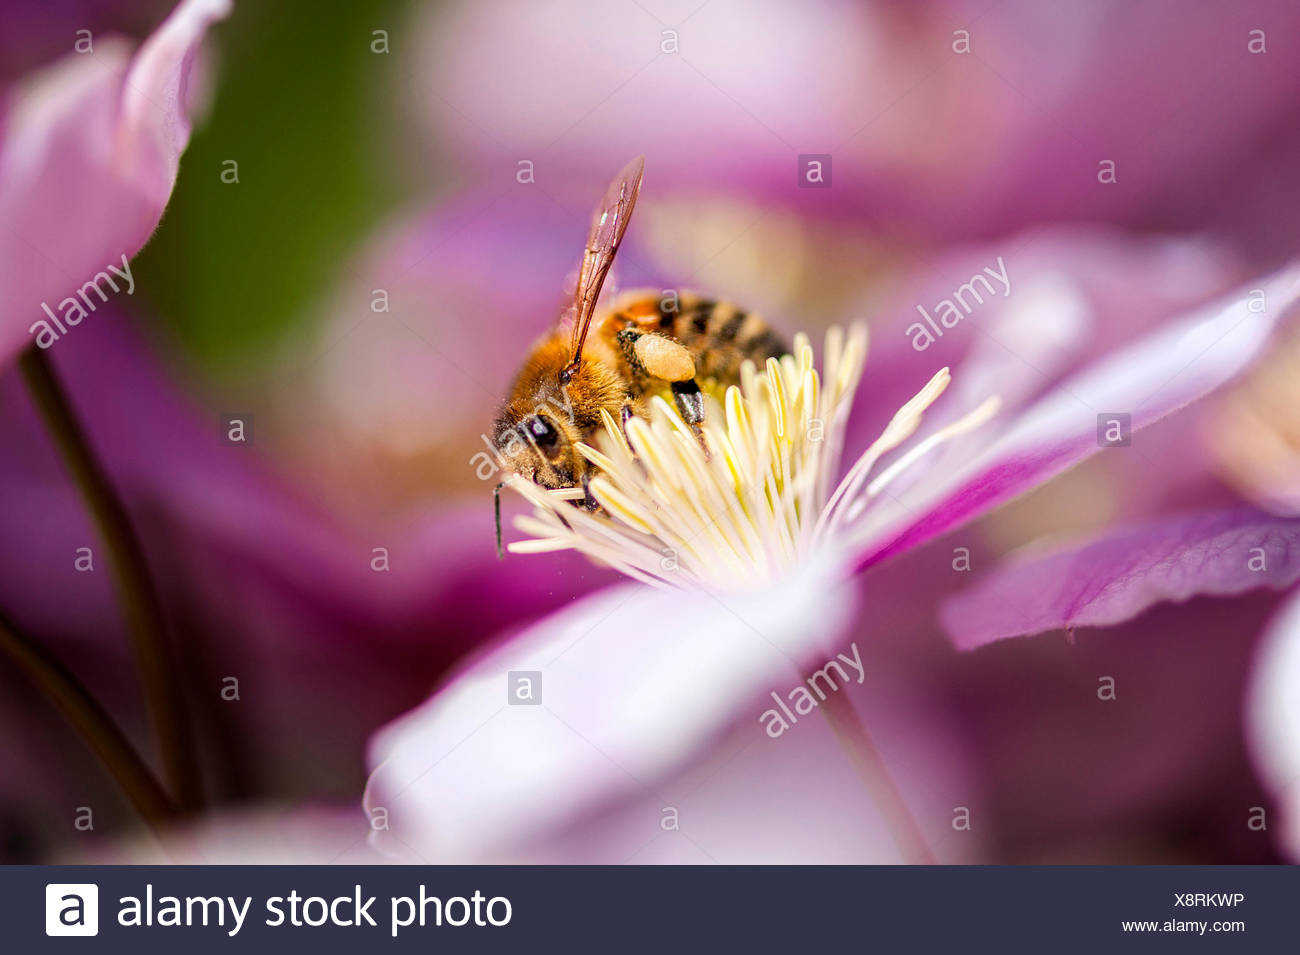 Bee sucking nectar from a flower Stock Photo